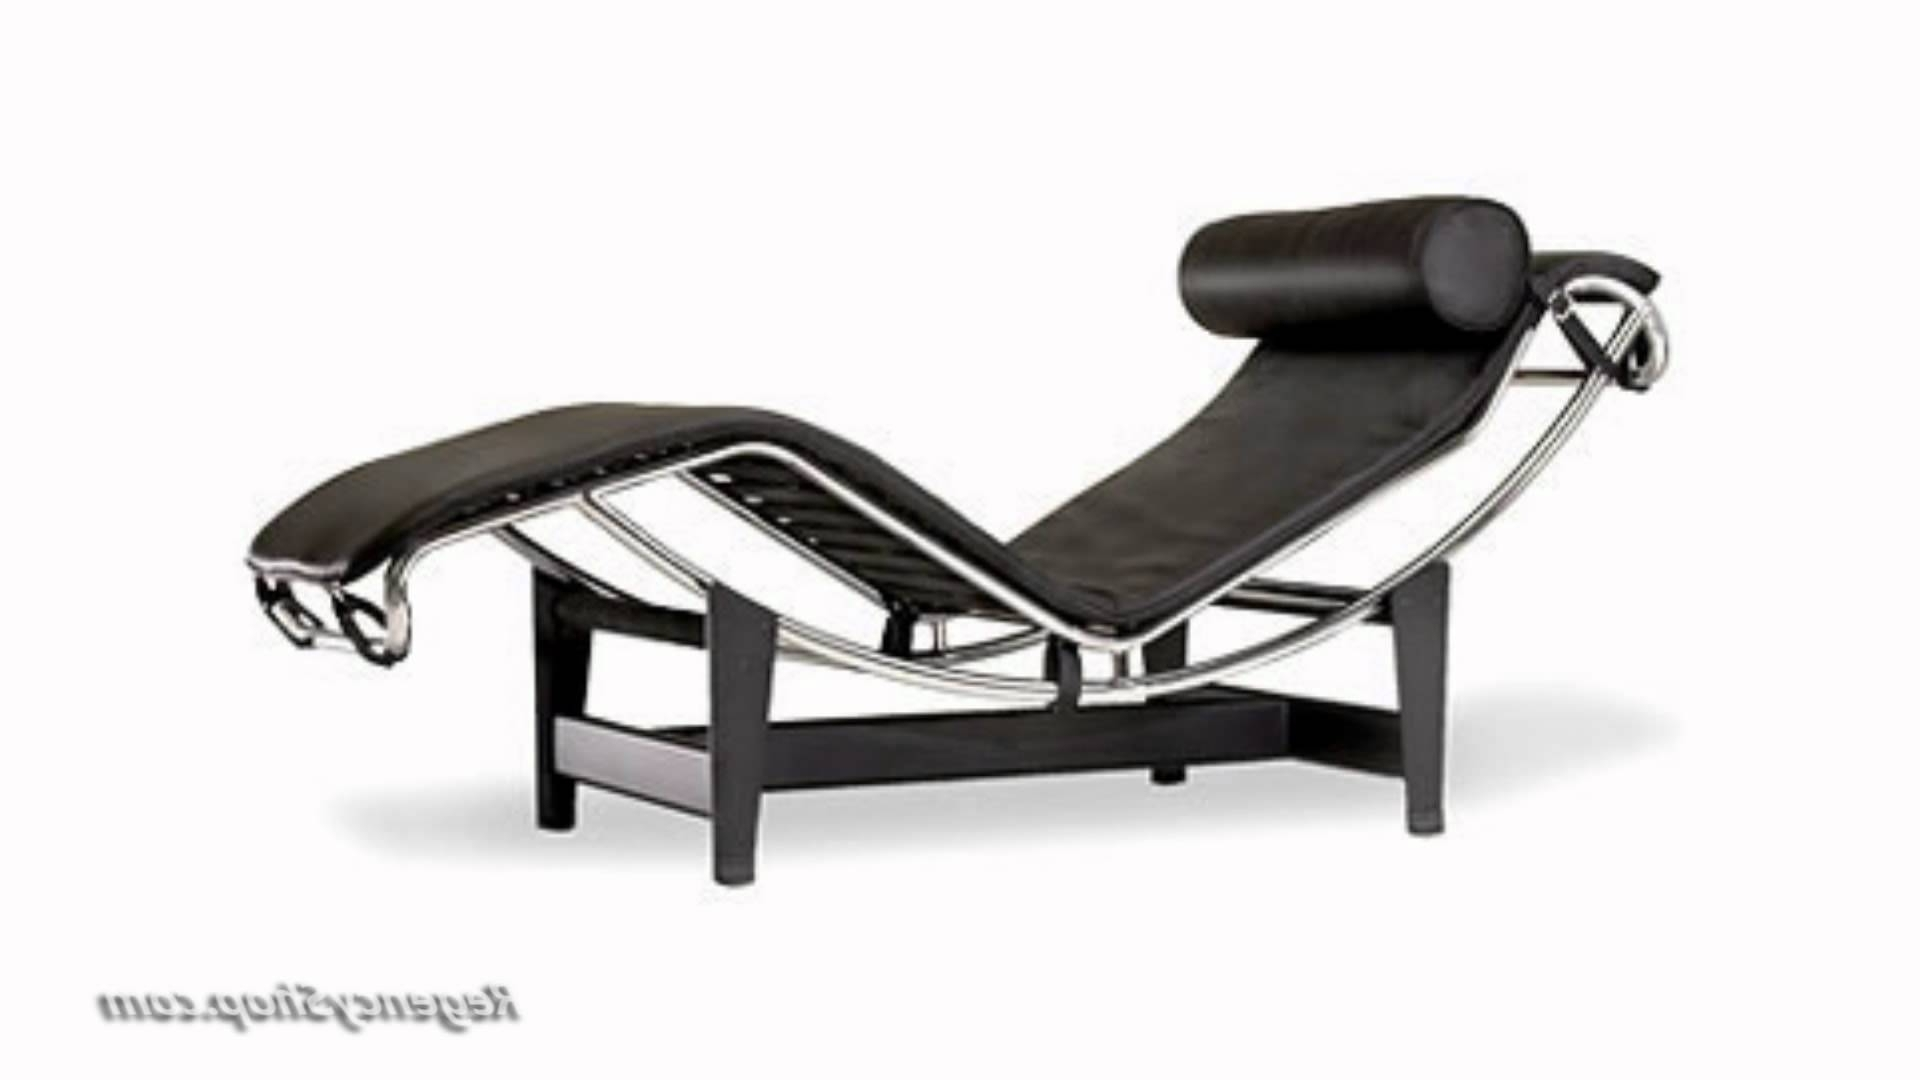 Le Corbusier Lc4 Chaise Lounge Chair – Regencyshop – Youtube Within Popular Lc4 Chaise Lounges (View 11 of 15)